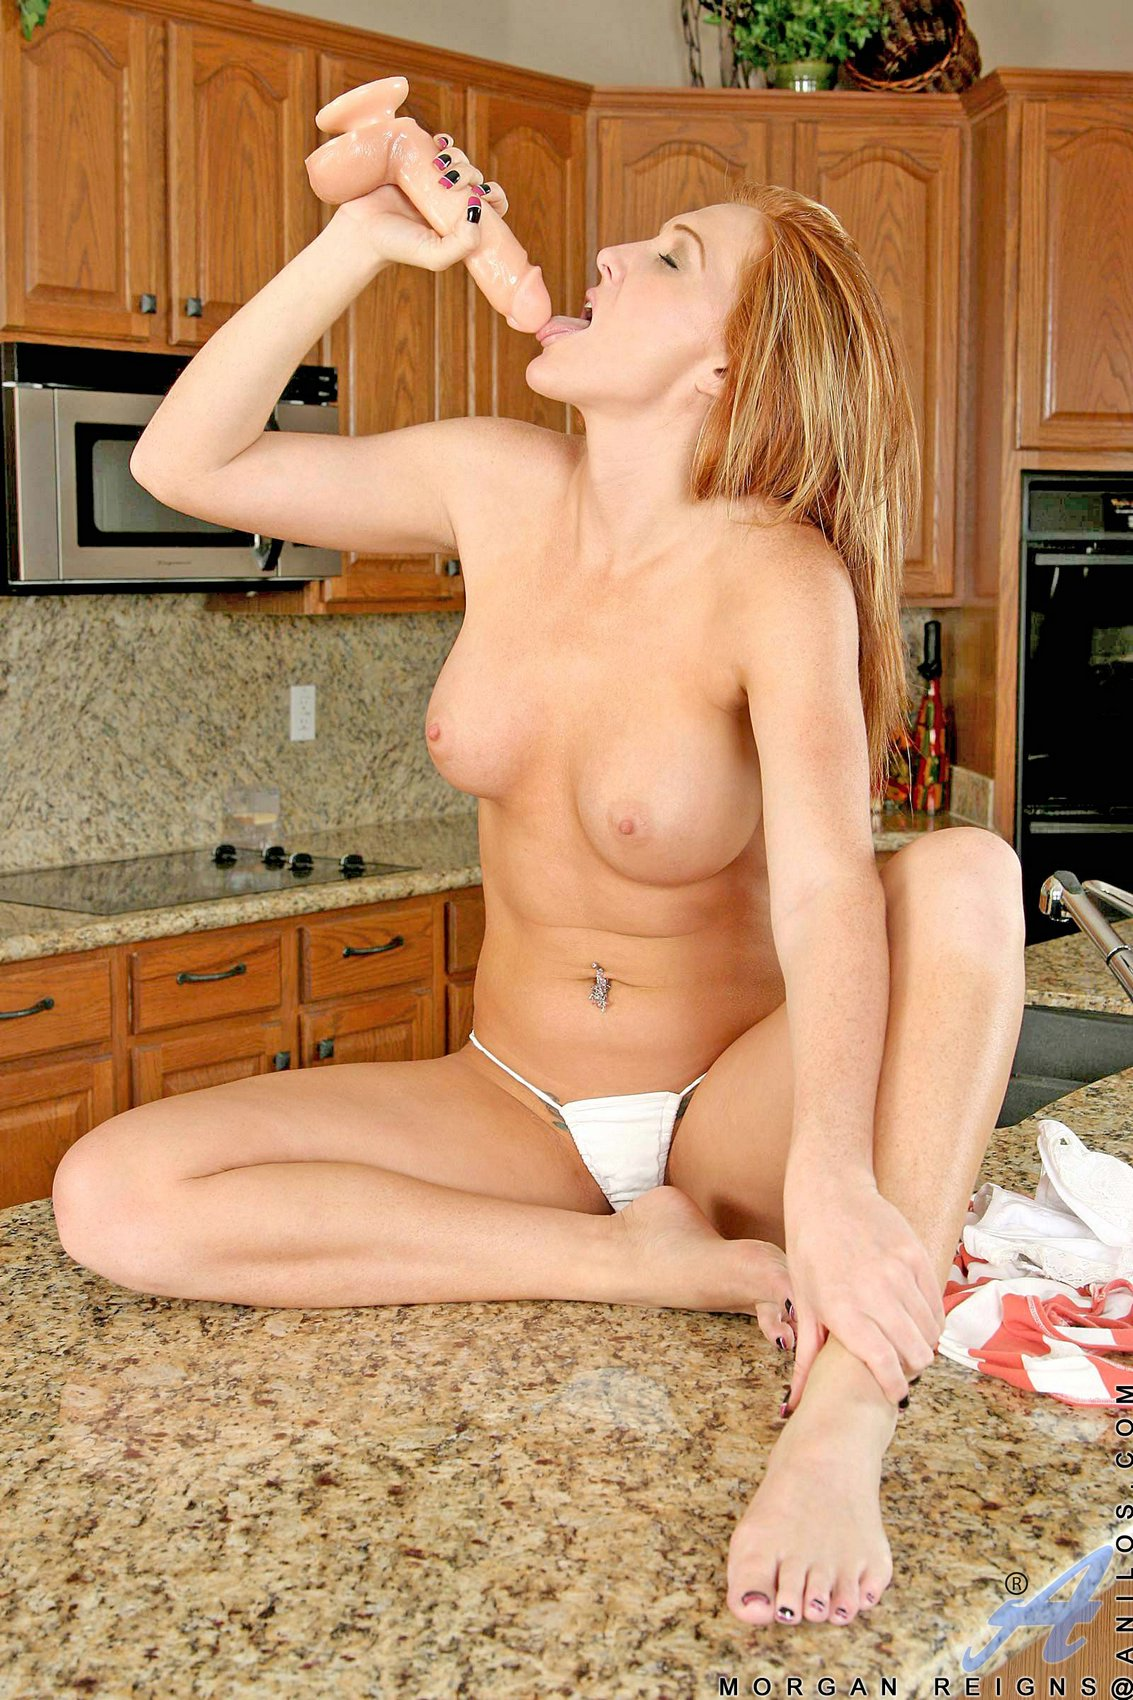 morgan reigns playing with a dildo in the kitchen my